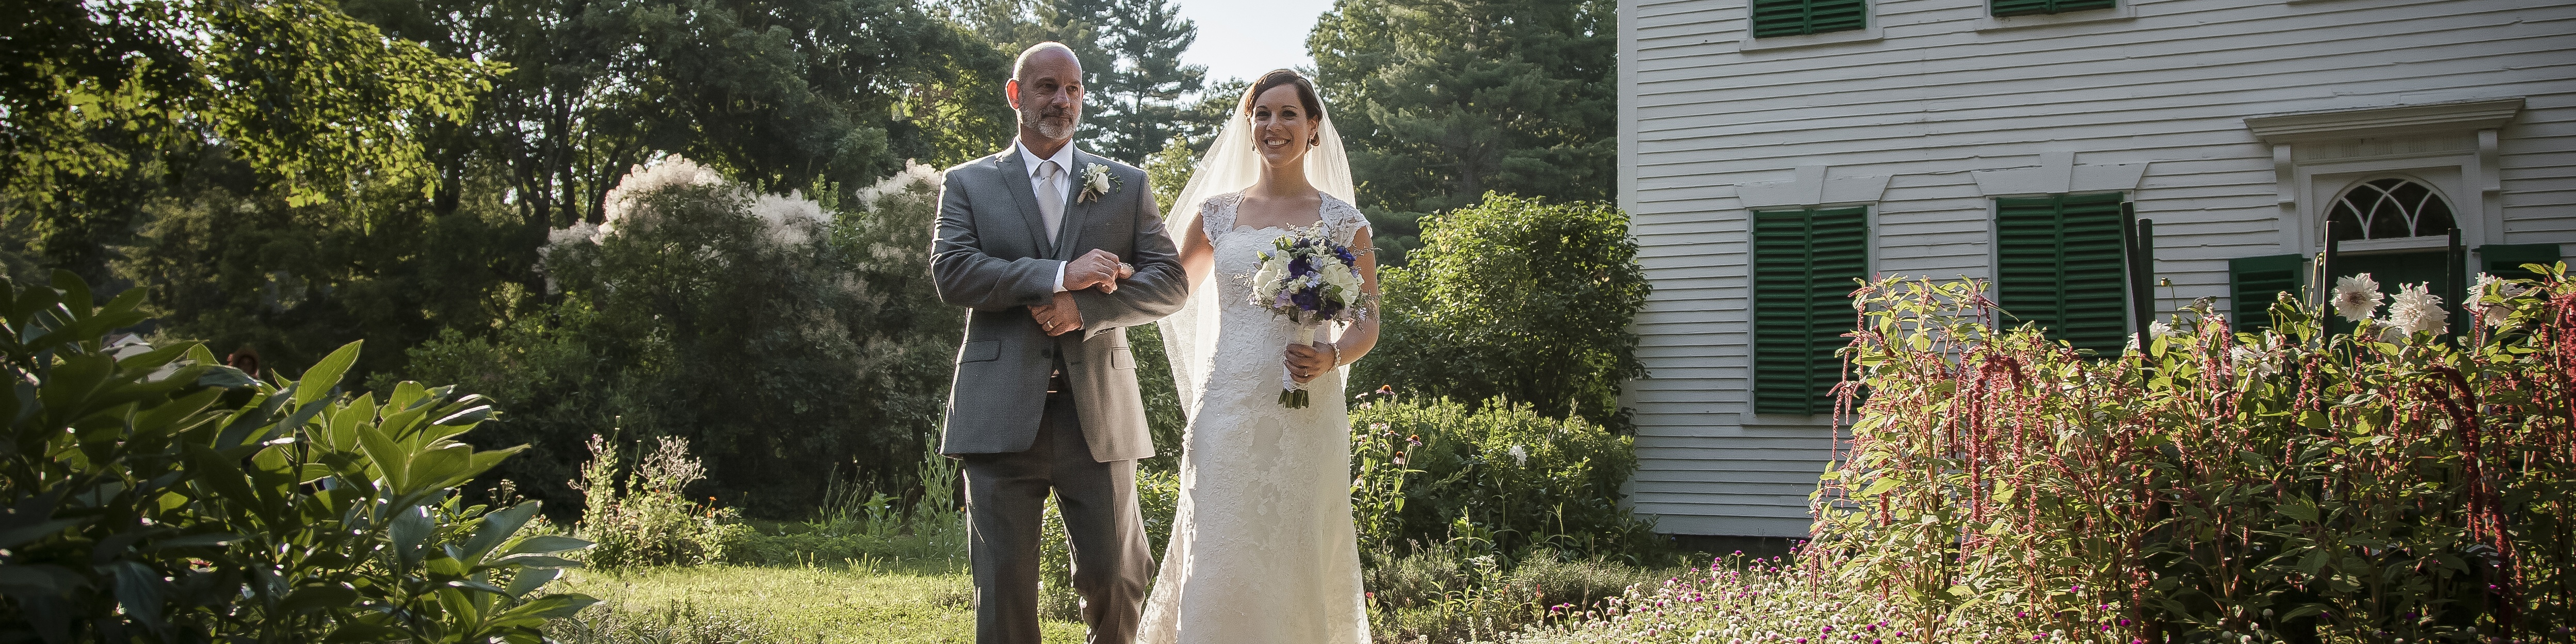 A wedding at Old Sturbridge Village